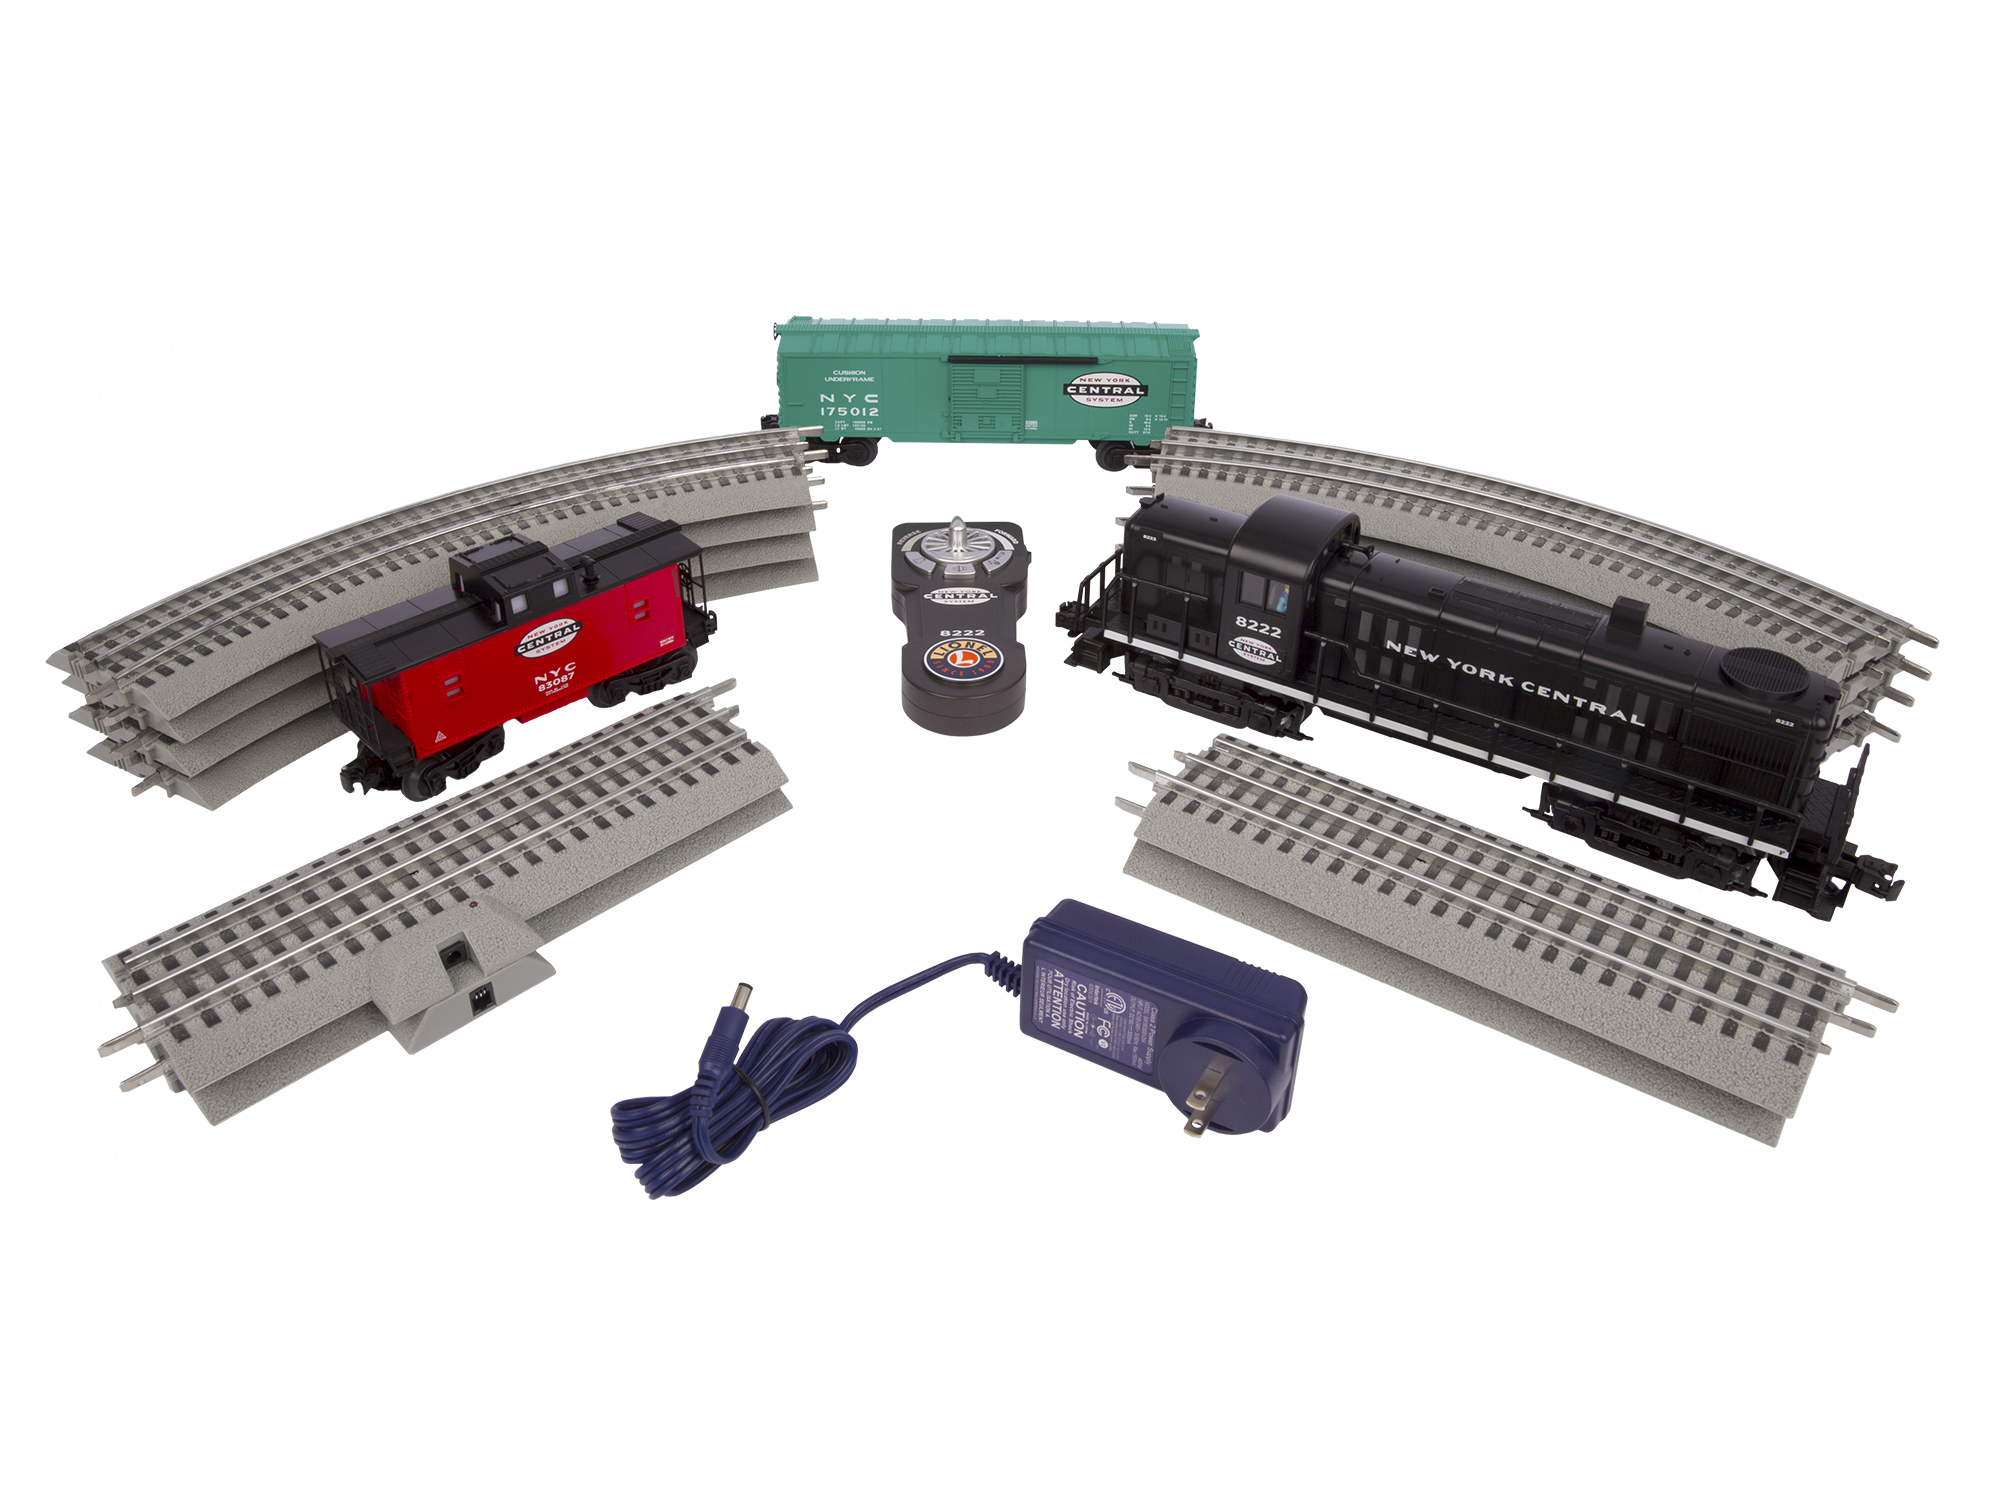 6-82984 NEW YORK CENTRAL RS-3 LIONCHIEF™ TRAIN SET